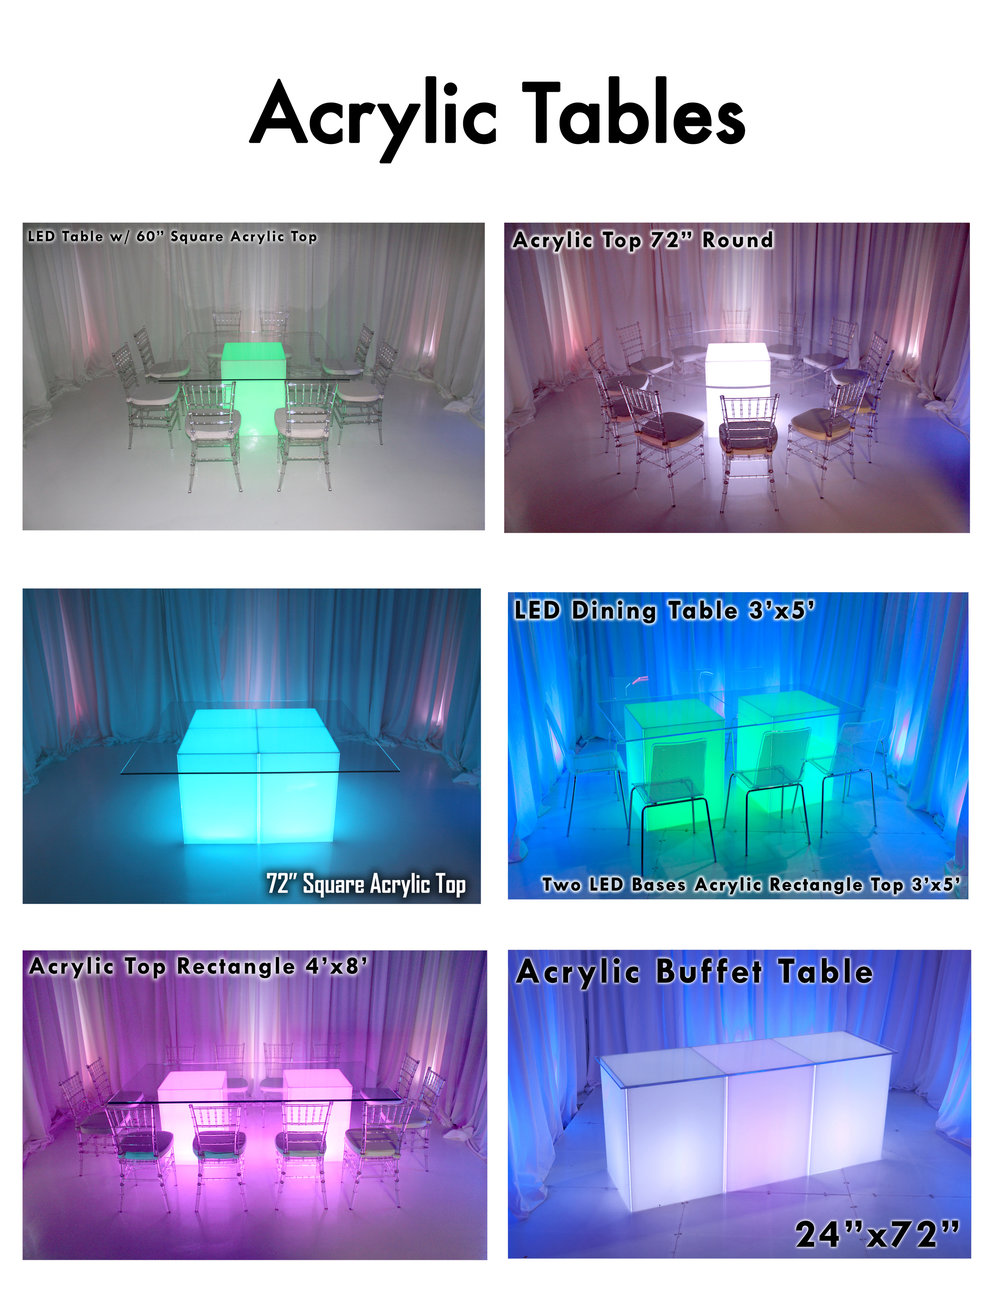 026-P25_Acrylic Tables.jpg